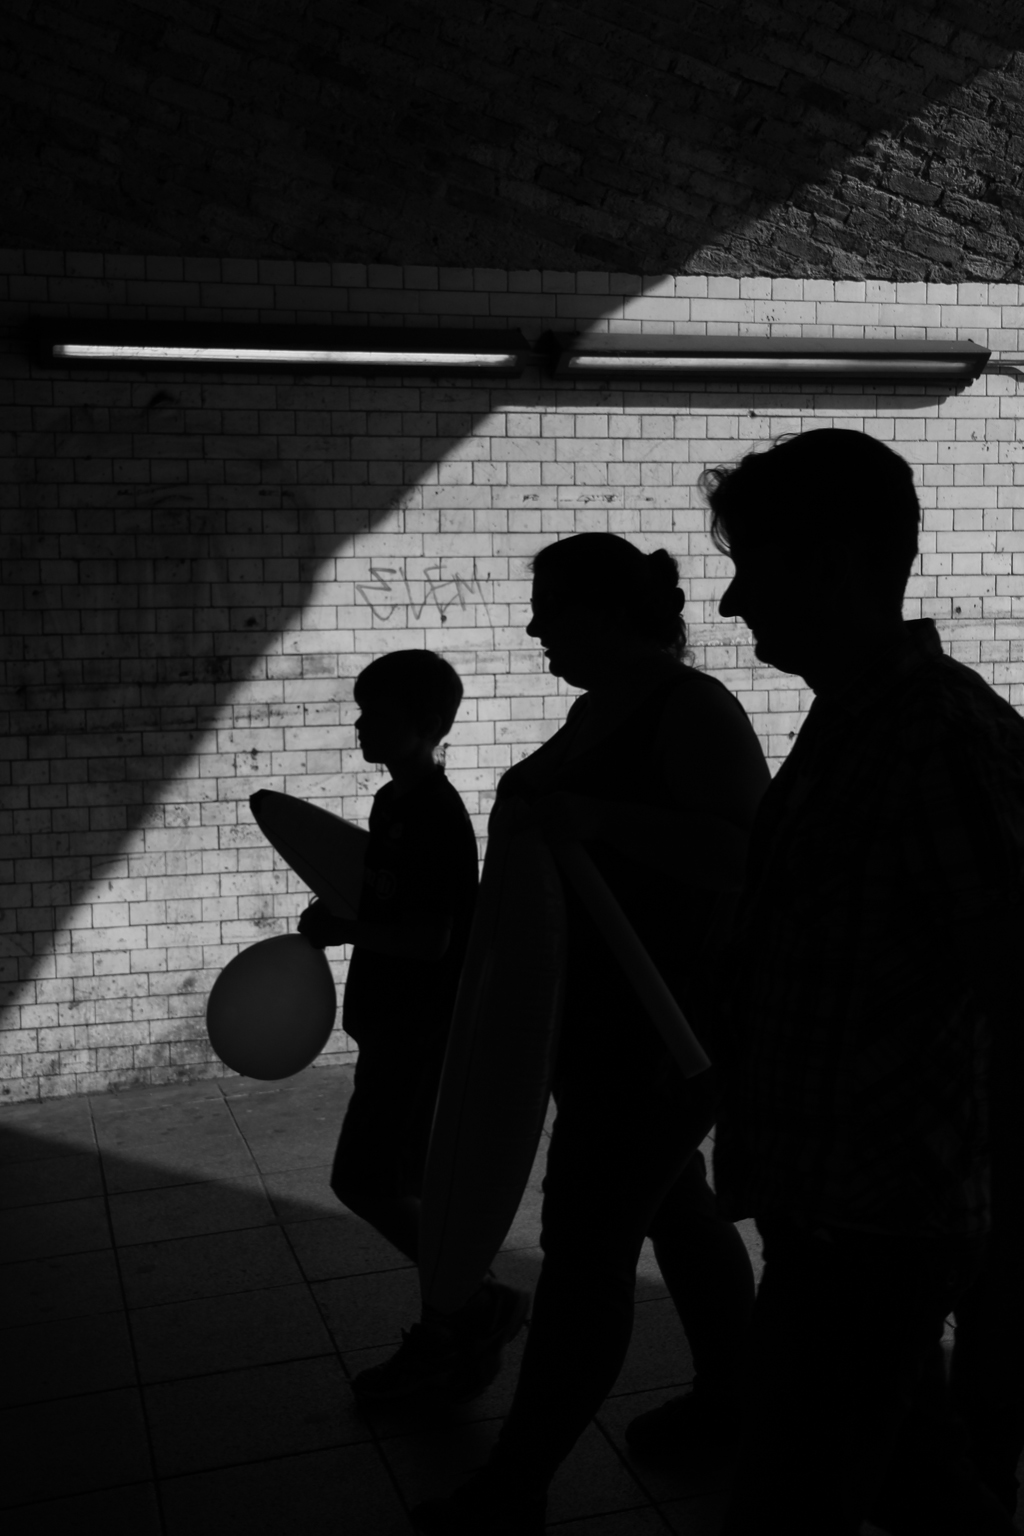 Shot in an underpass near Waterloo Station, London, I took dozens of photographs before this one presented itself. I like to project a sense of mystery in my photographs and this is no exception, calling it Bloodline to represent family, along with its linear composition.